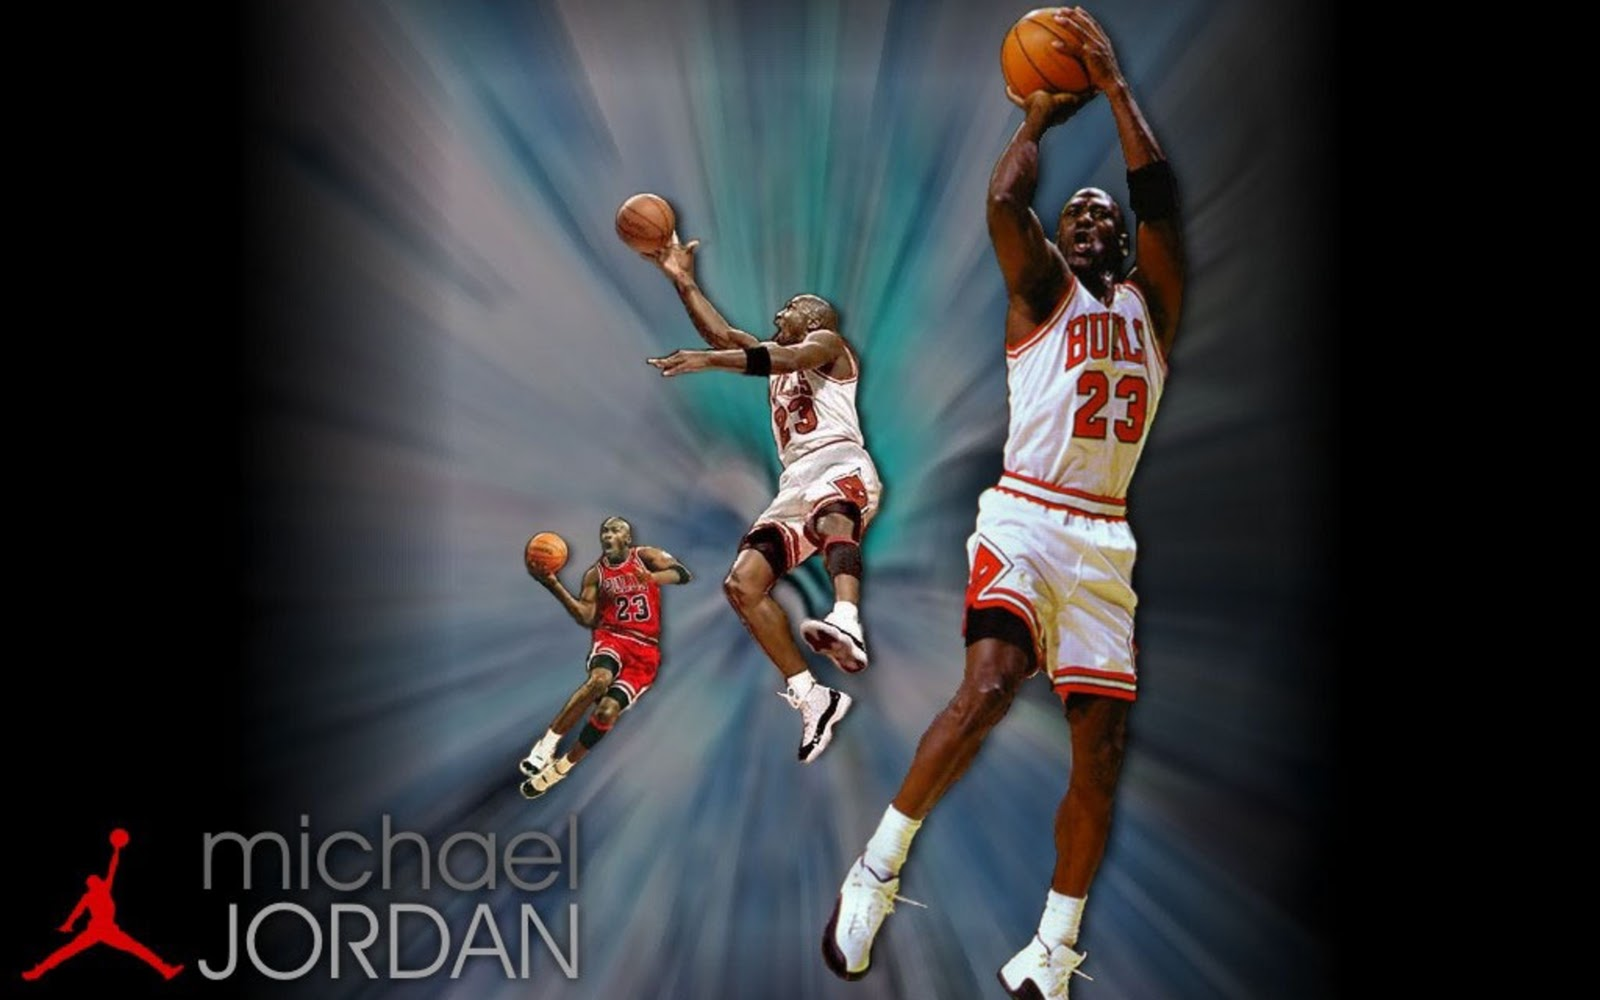 http://4.bp.blogspot.com/-IcISmRzSkOM/T3rdVyPnP2I/AAAAAAAAAEM/eg1lPpVDx6Q/s1600/Michael+Jordan+slam+dunk+background.jpg